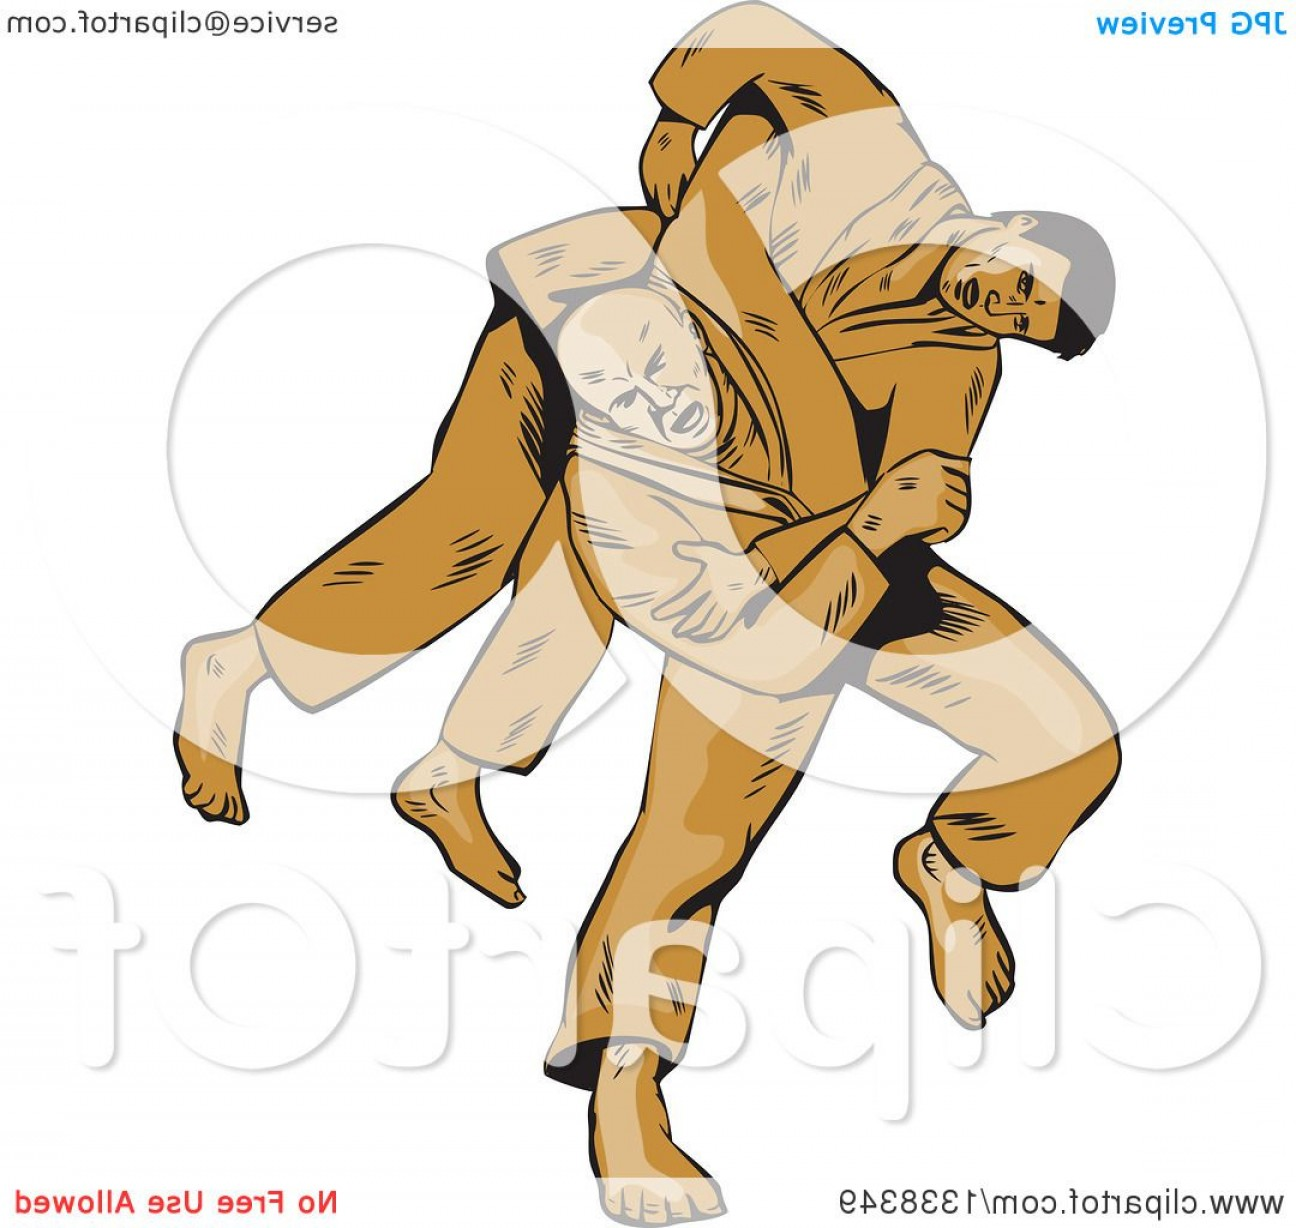 Judo Throw Vector Graphics: Sketched Or Engraved Judo Judoka Combatant Throwing Takedown An Opponent